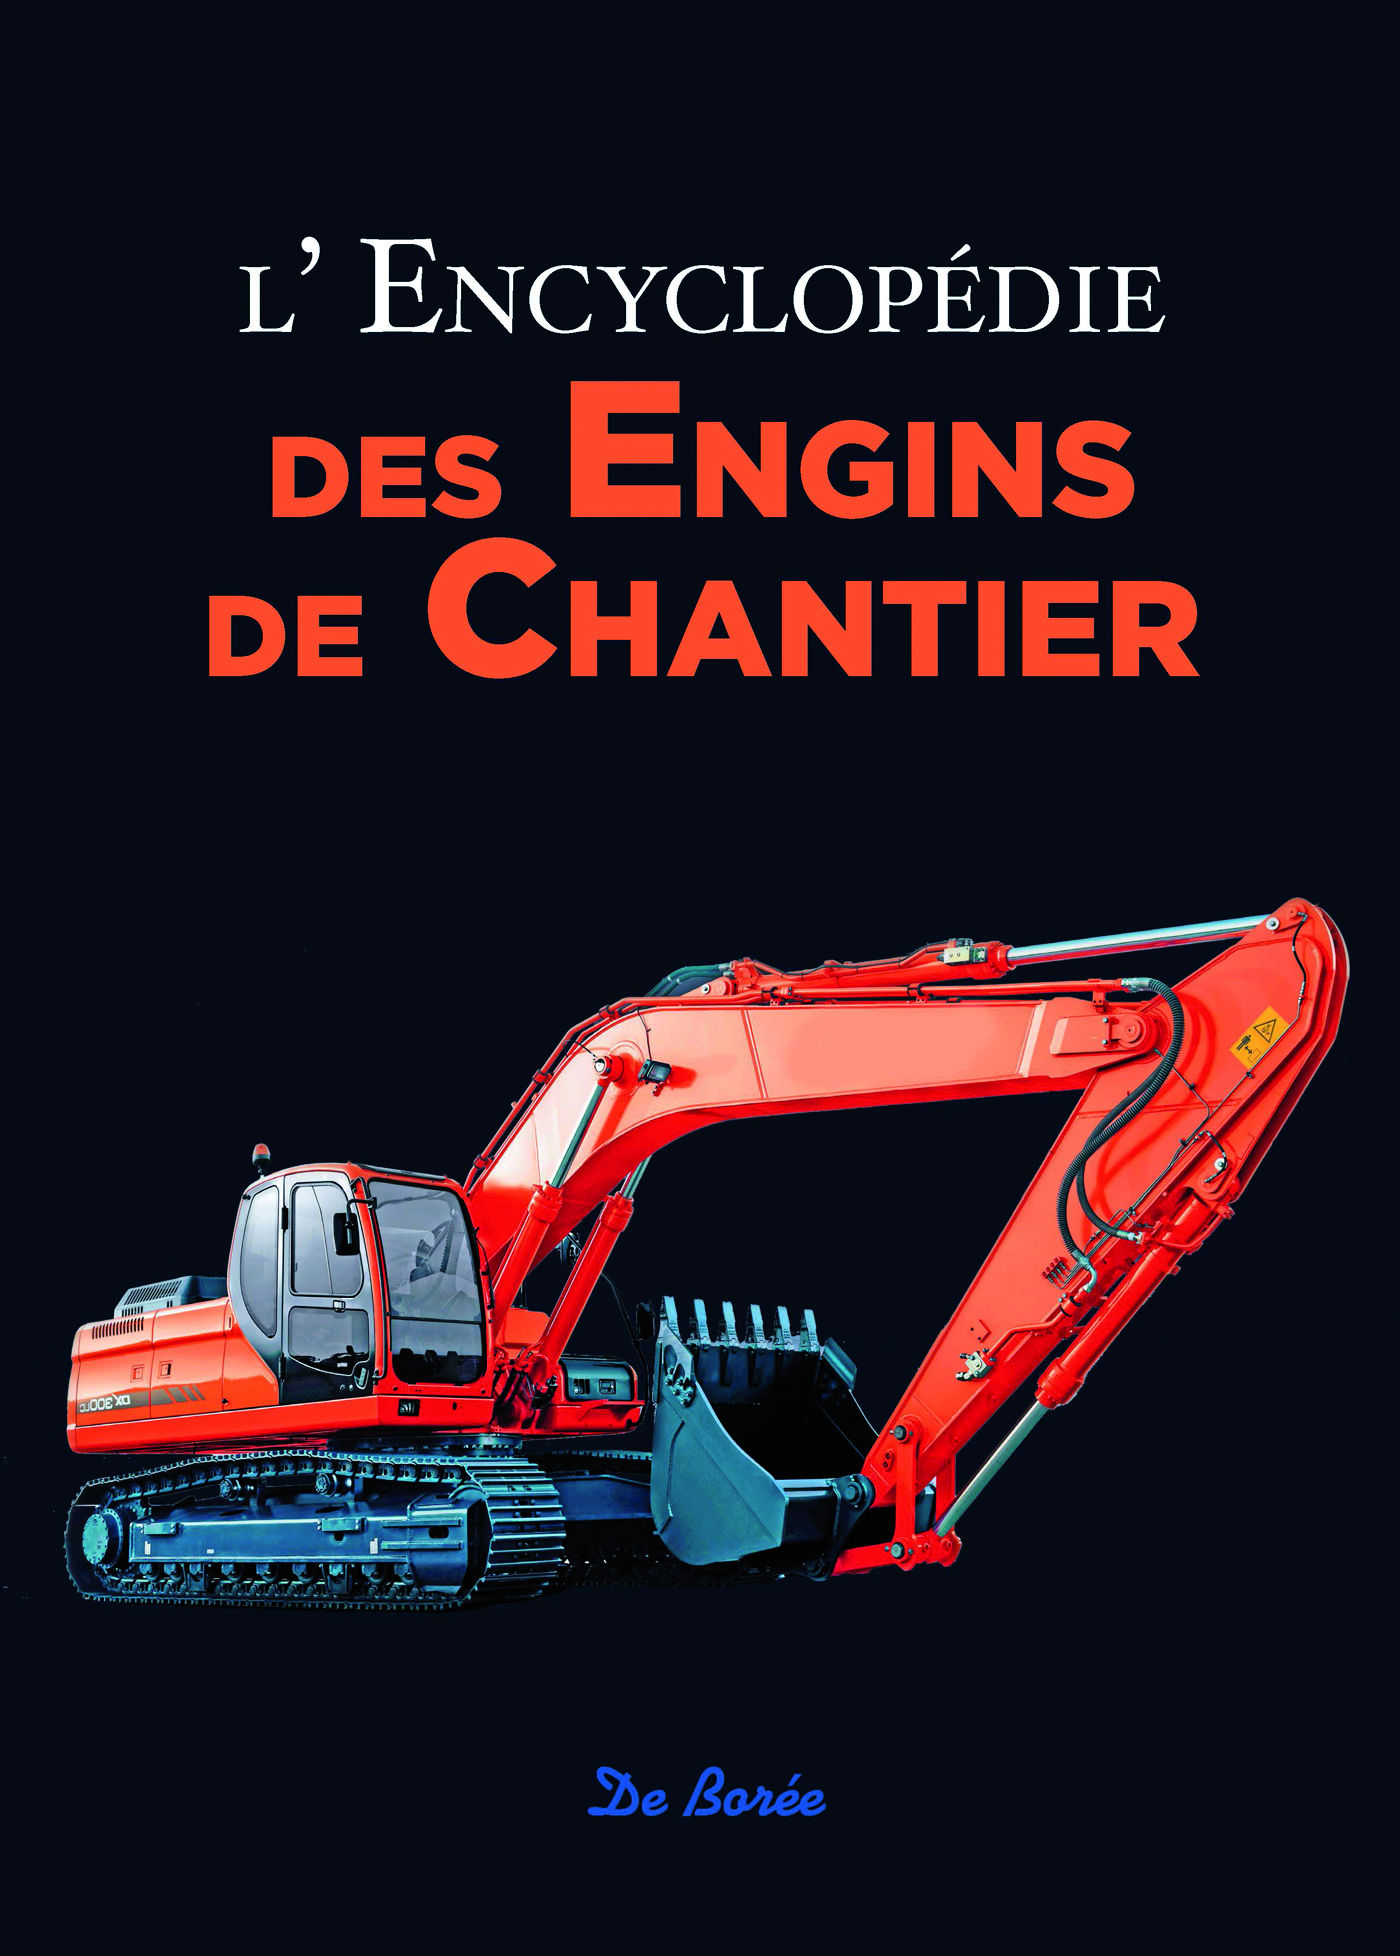 ENCYCLOPEDIE DES ENGINS DE CHANTIER